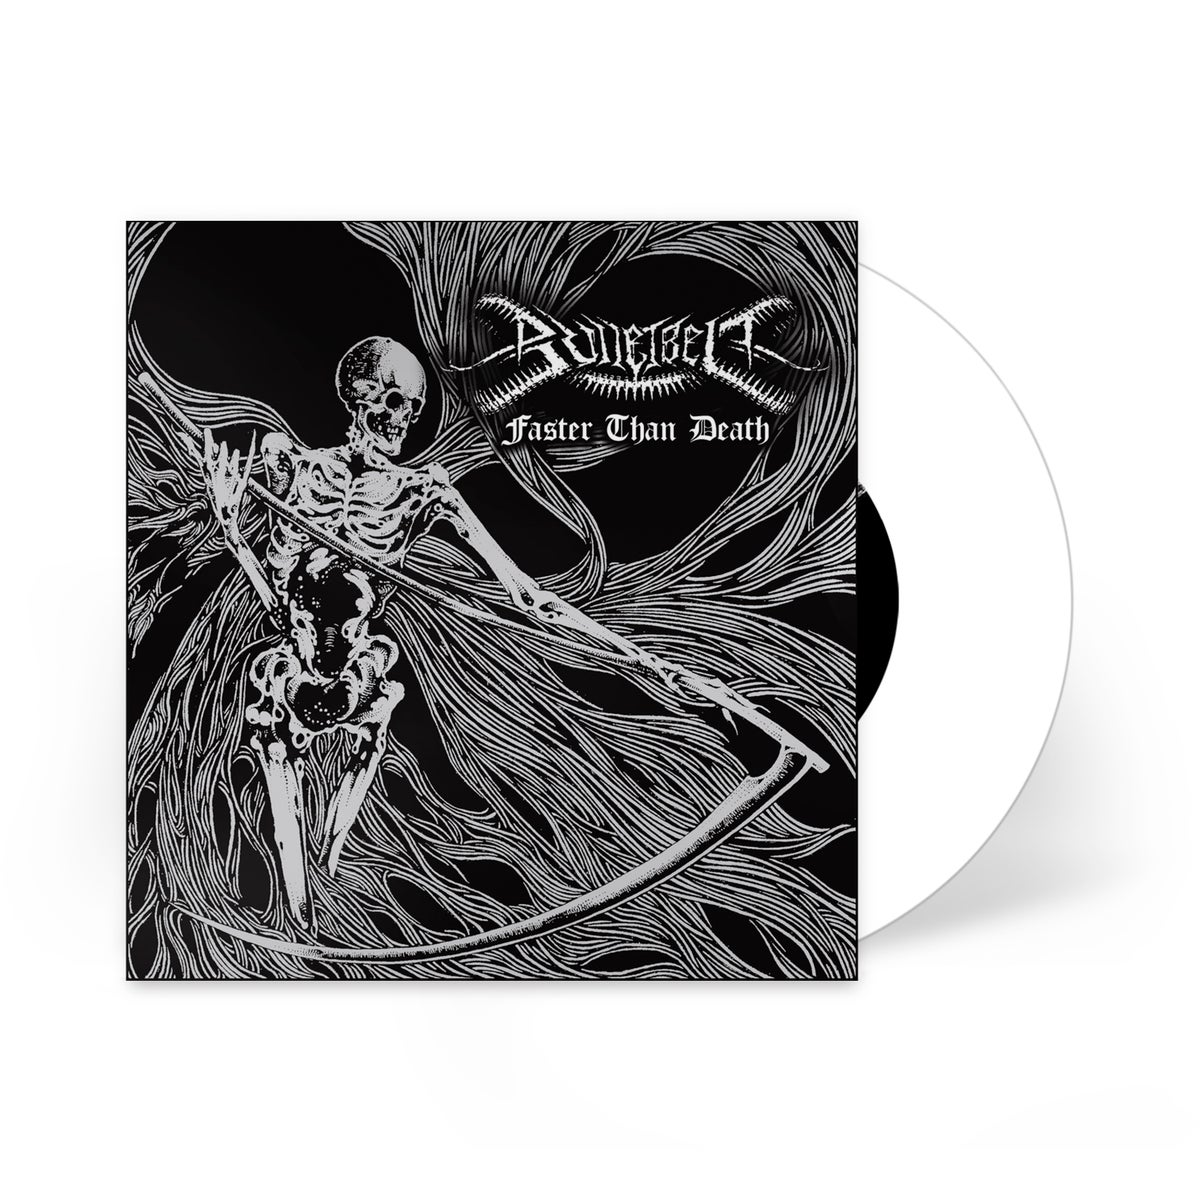 """Image of Bulletbelt """"Faster Than Death"""" 7 inch LP"""